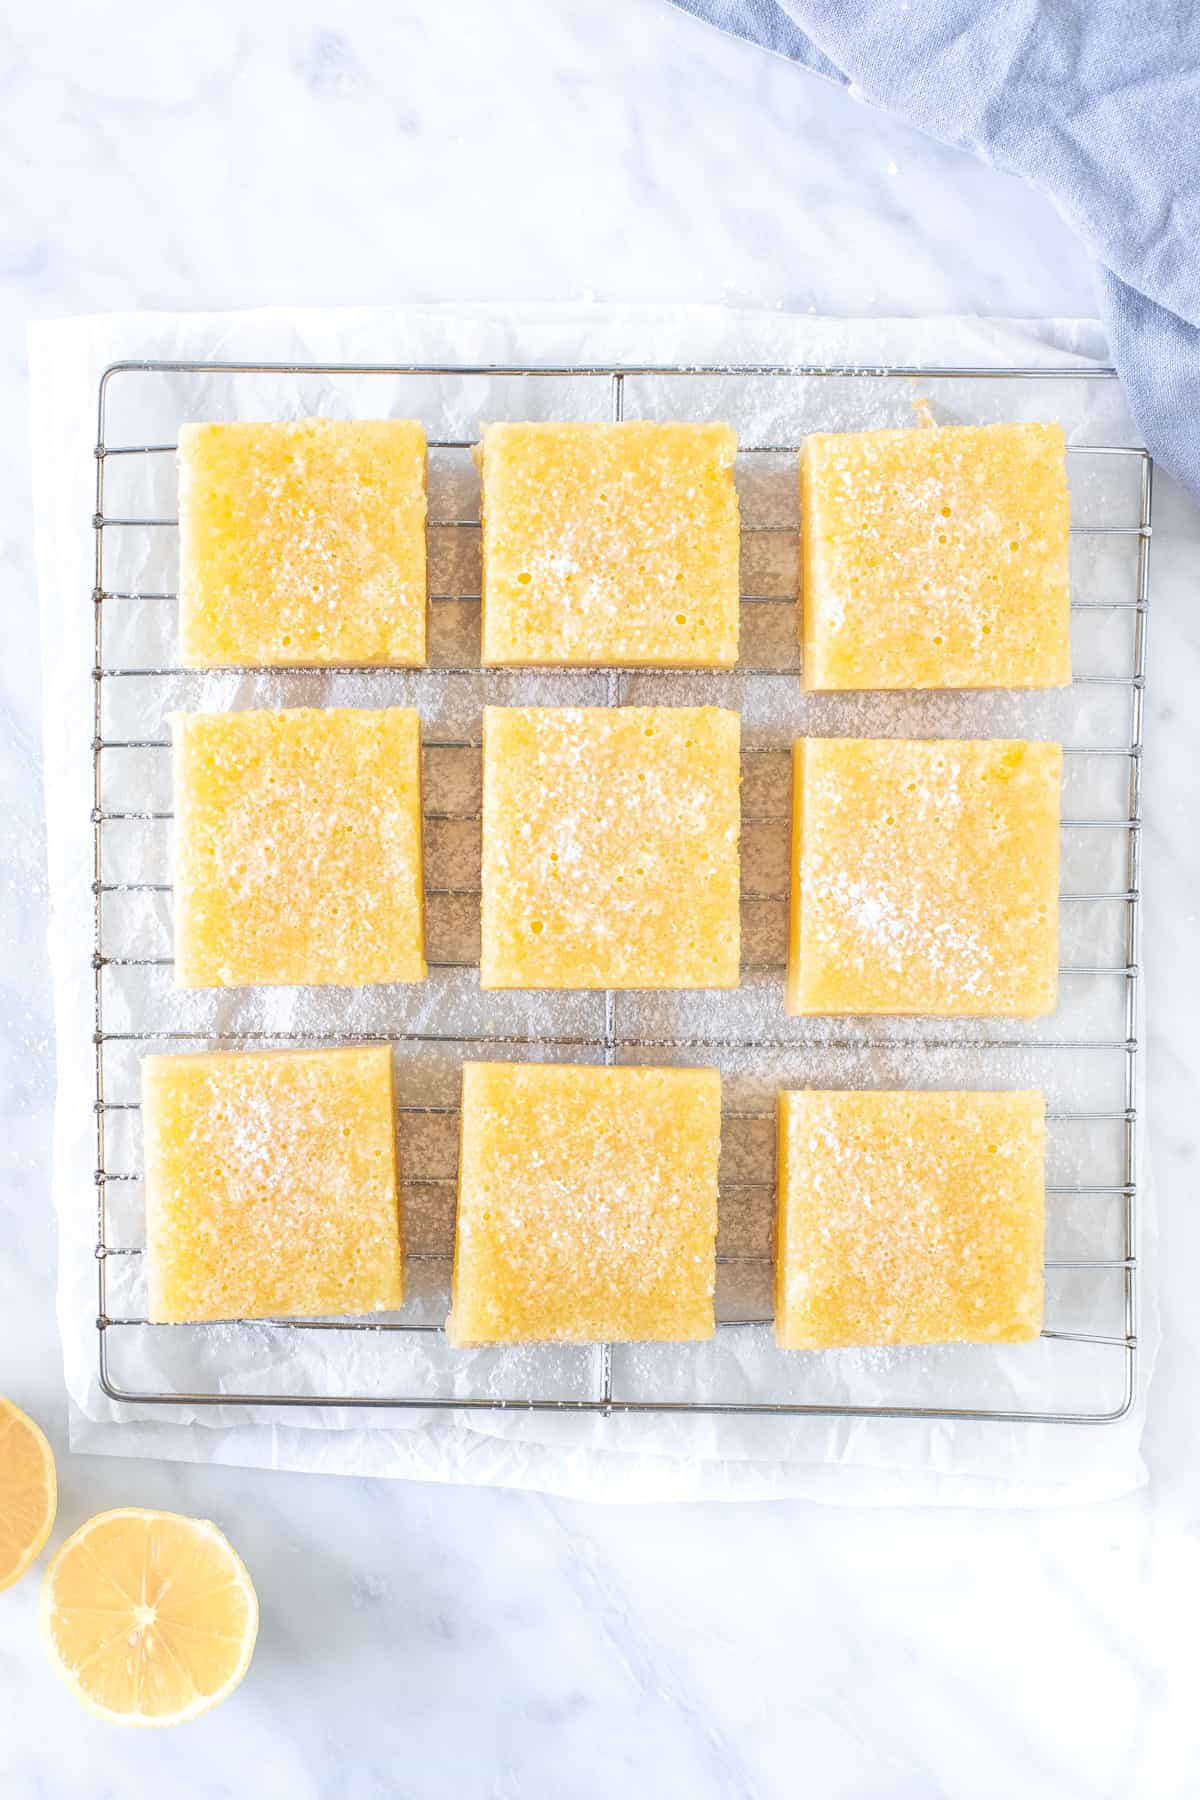 9 lemon bars on a cooling rack sprinkled with powdered sugar.